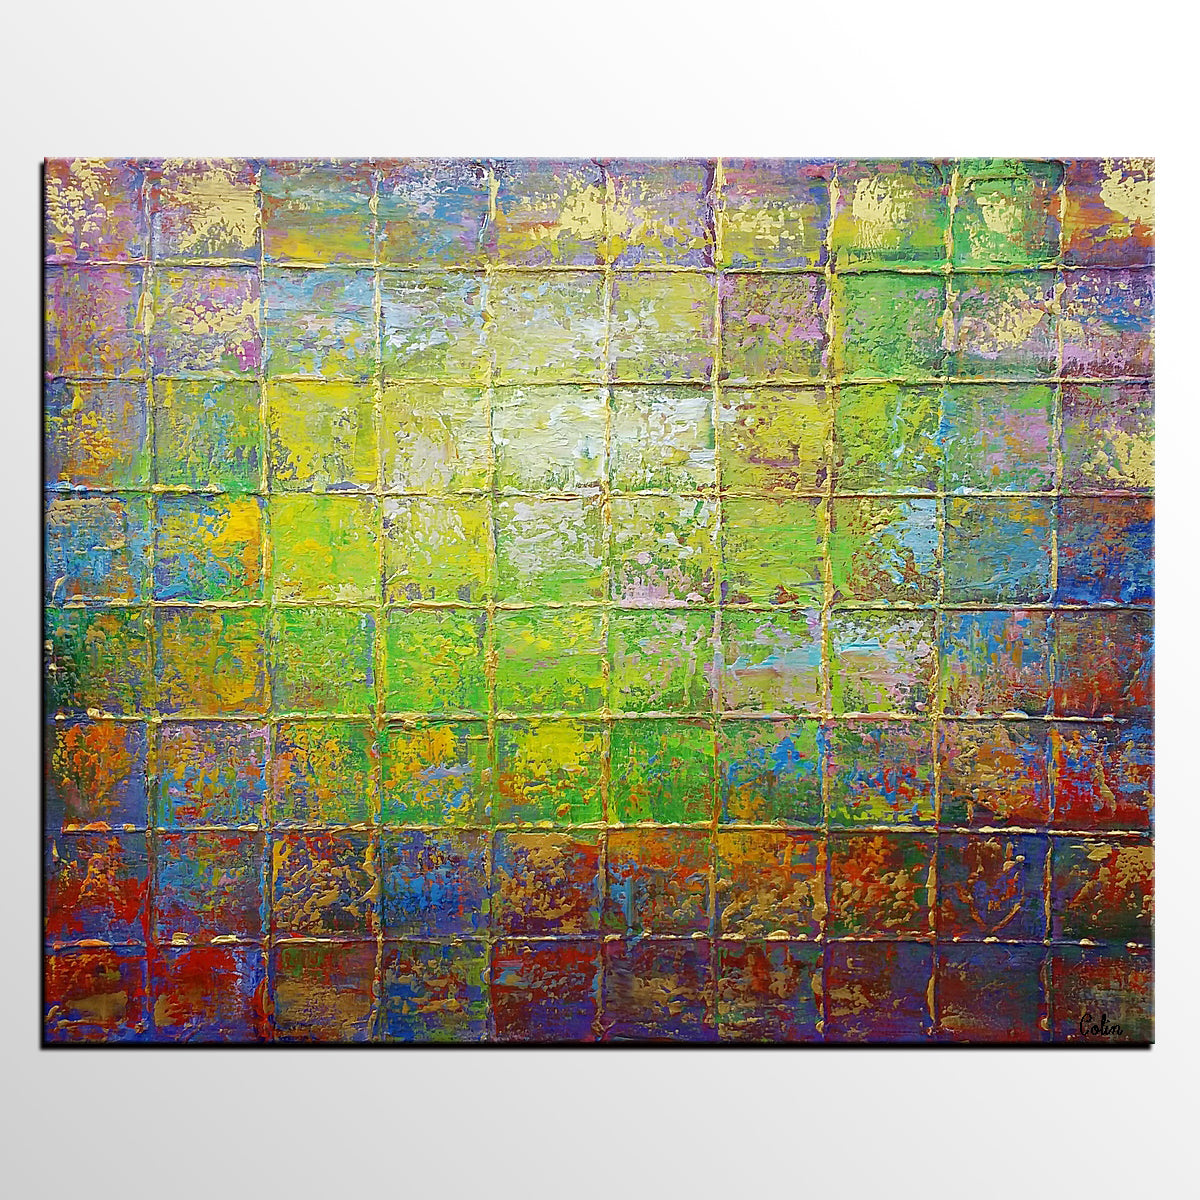 Original Wall Art, Abtract Painting, Abtract Art, Large Art, Canvas Art, Wall Art, Original Artwork, Canvas Painting, Framed Painting 167